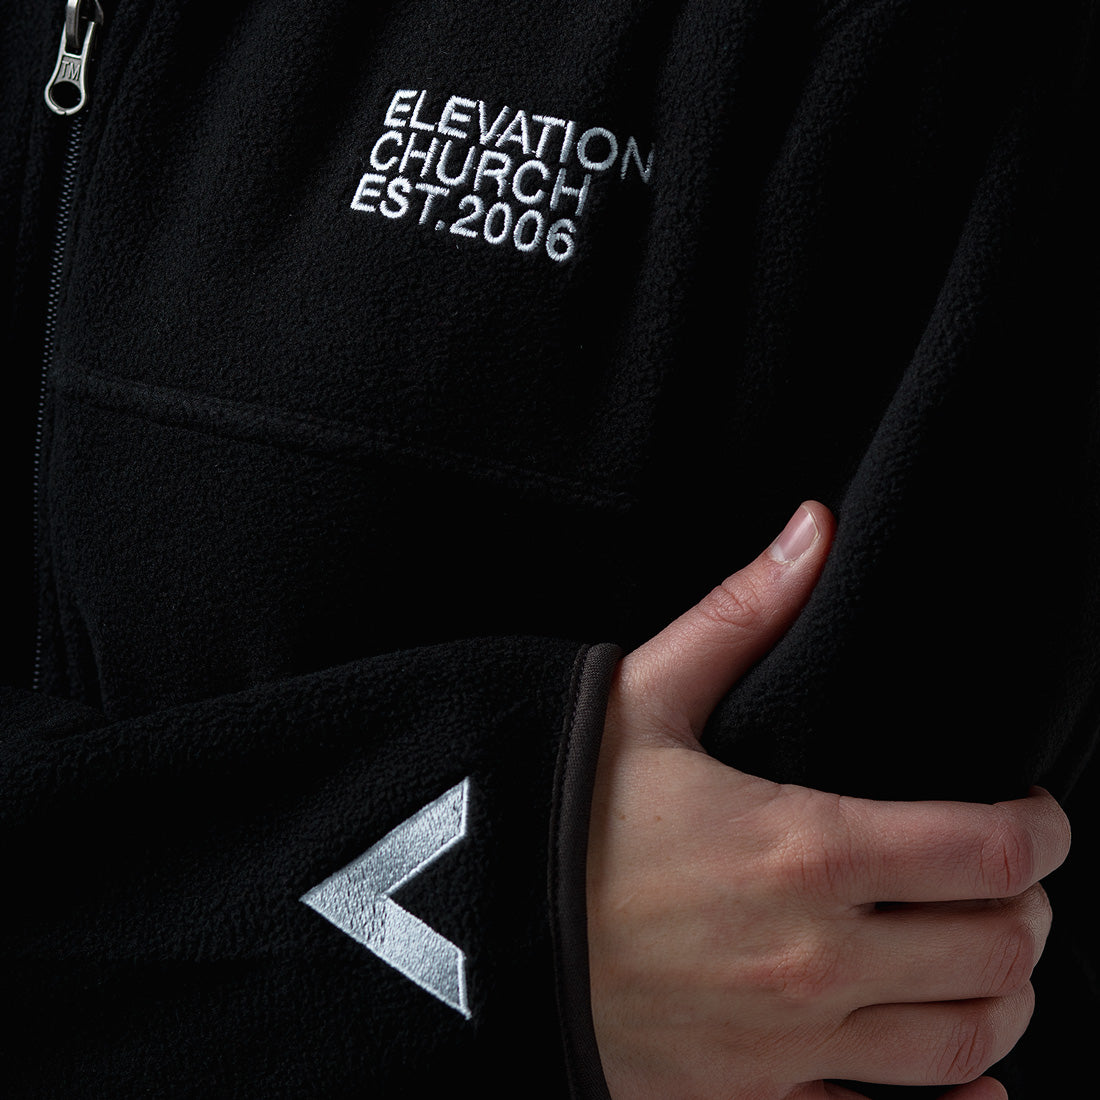 'Elevation Church' Fleece Jacket